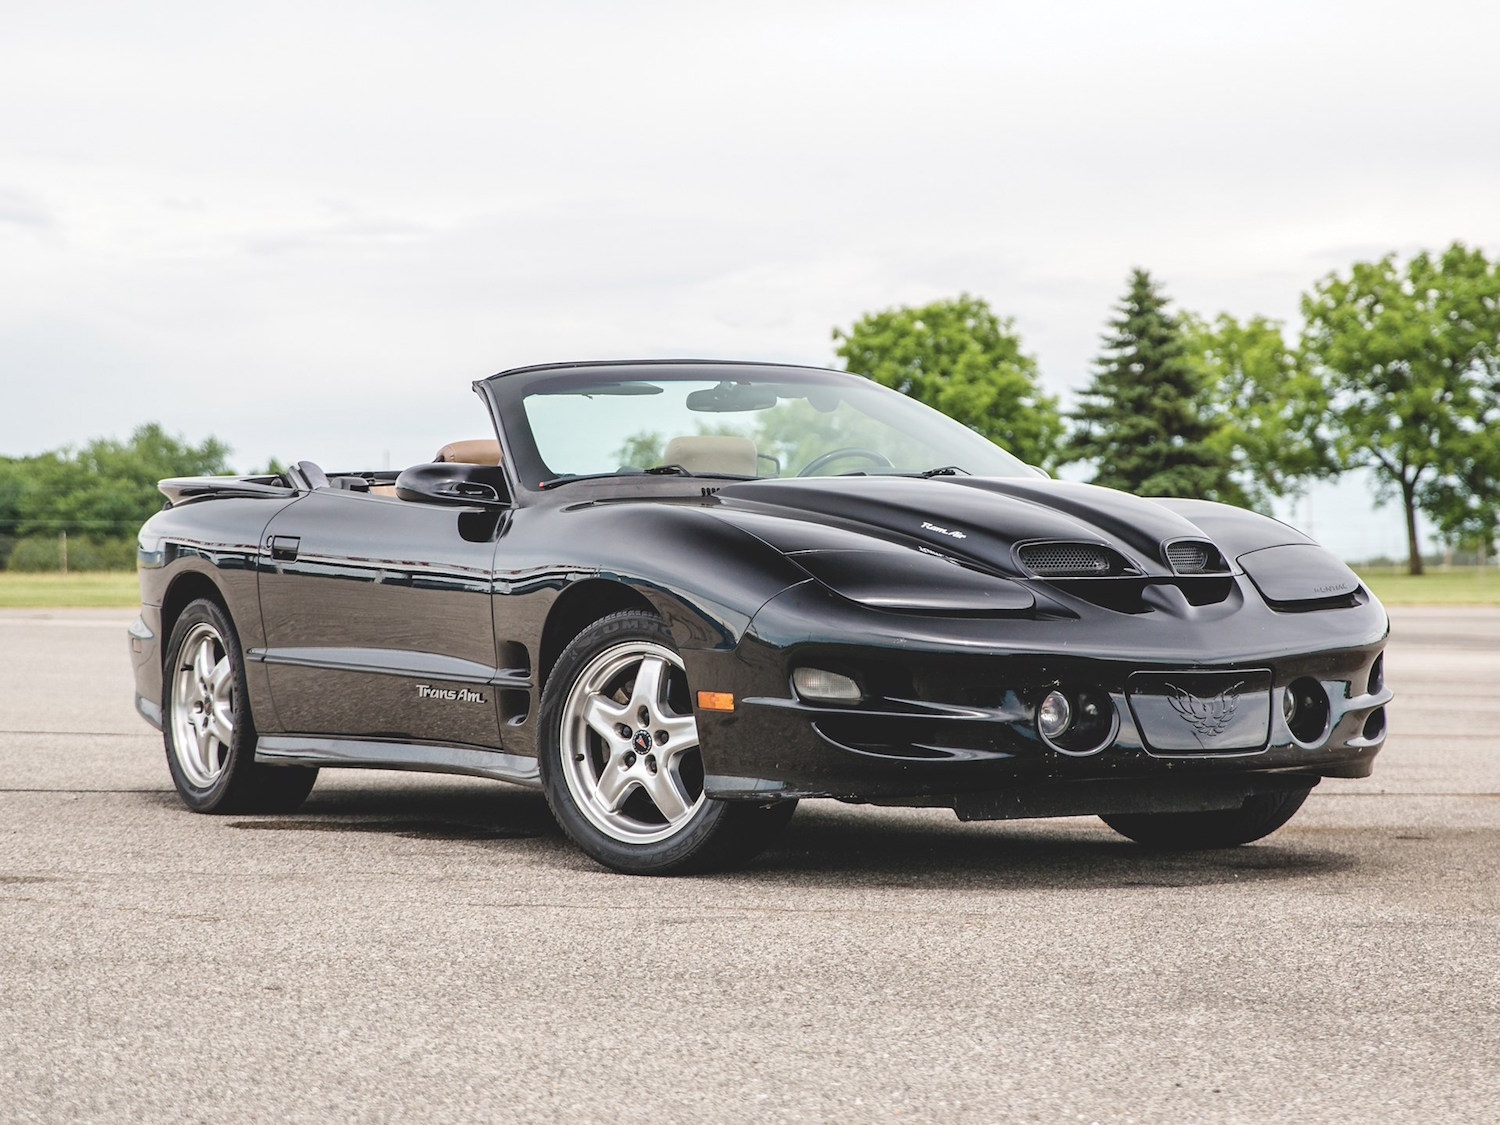 Bargain-bought 2001 Trans Am WS6 is outrageous in all the right ways